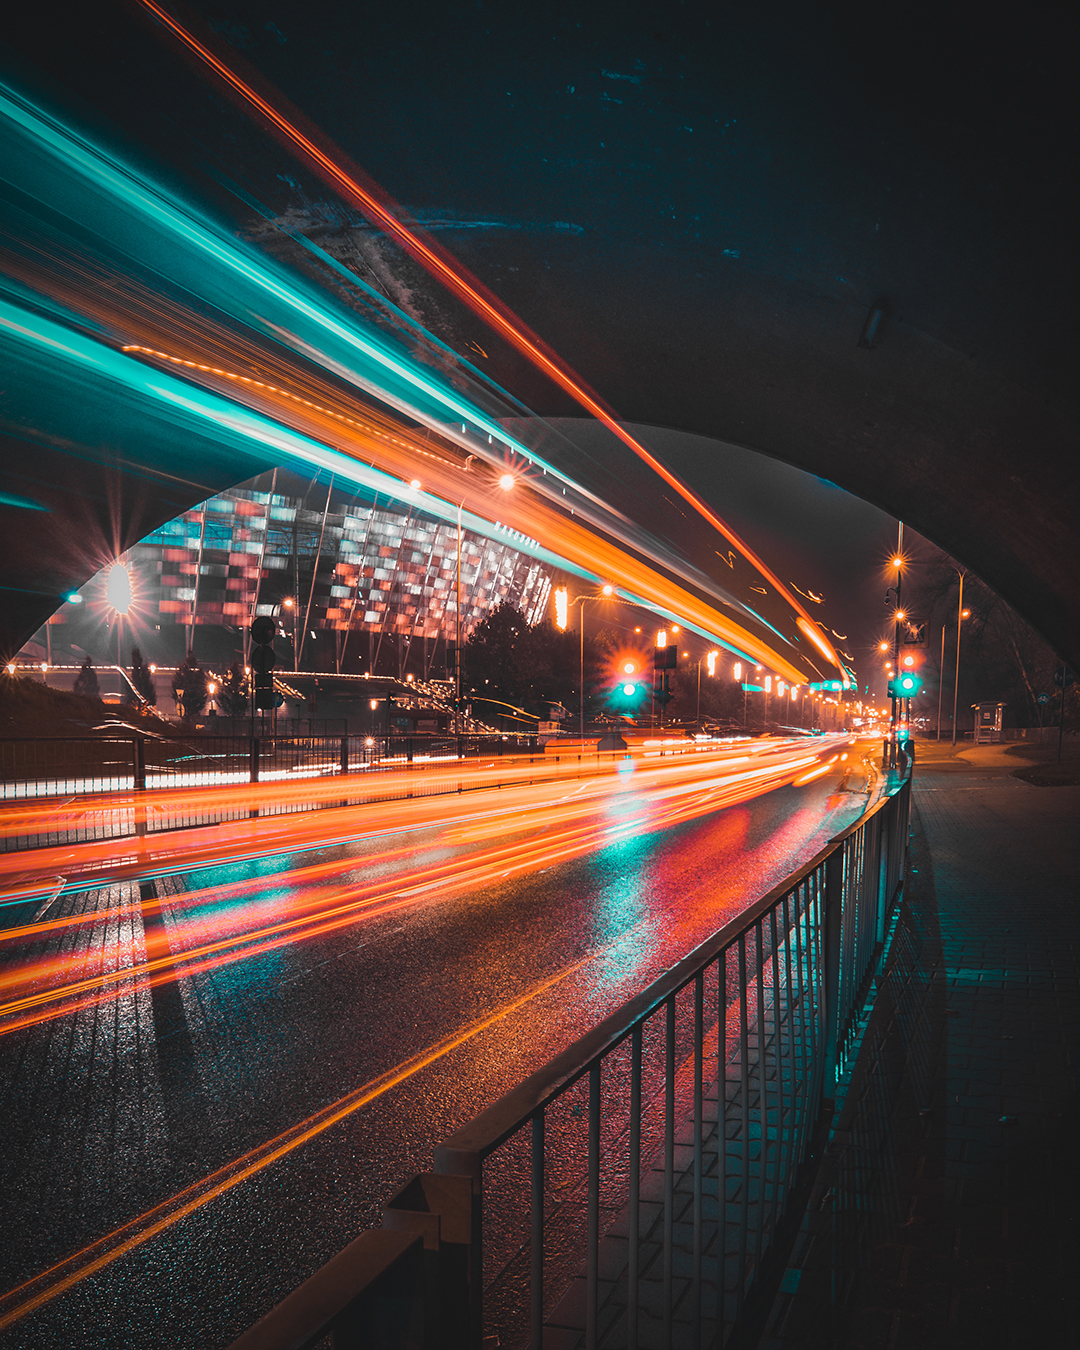 Dynamic Images of Warsaw at Night